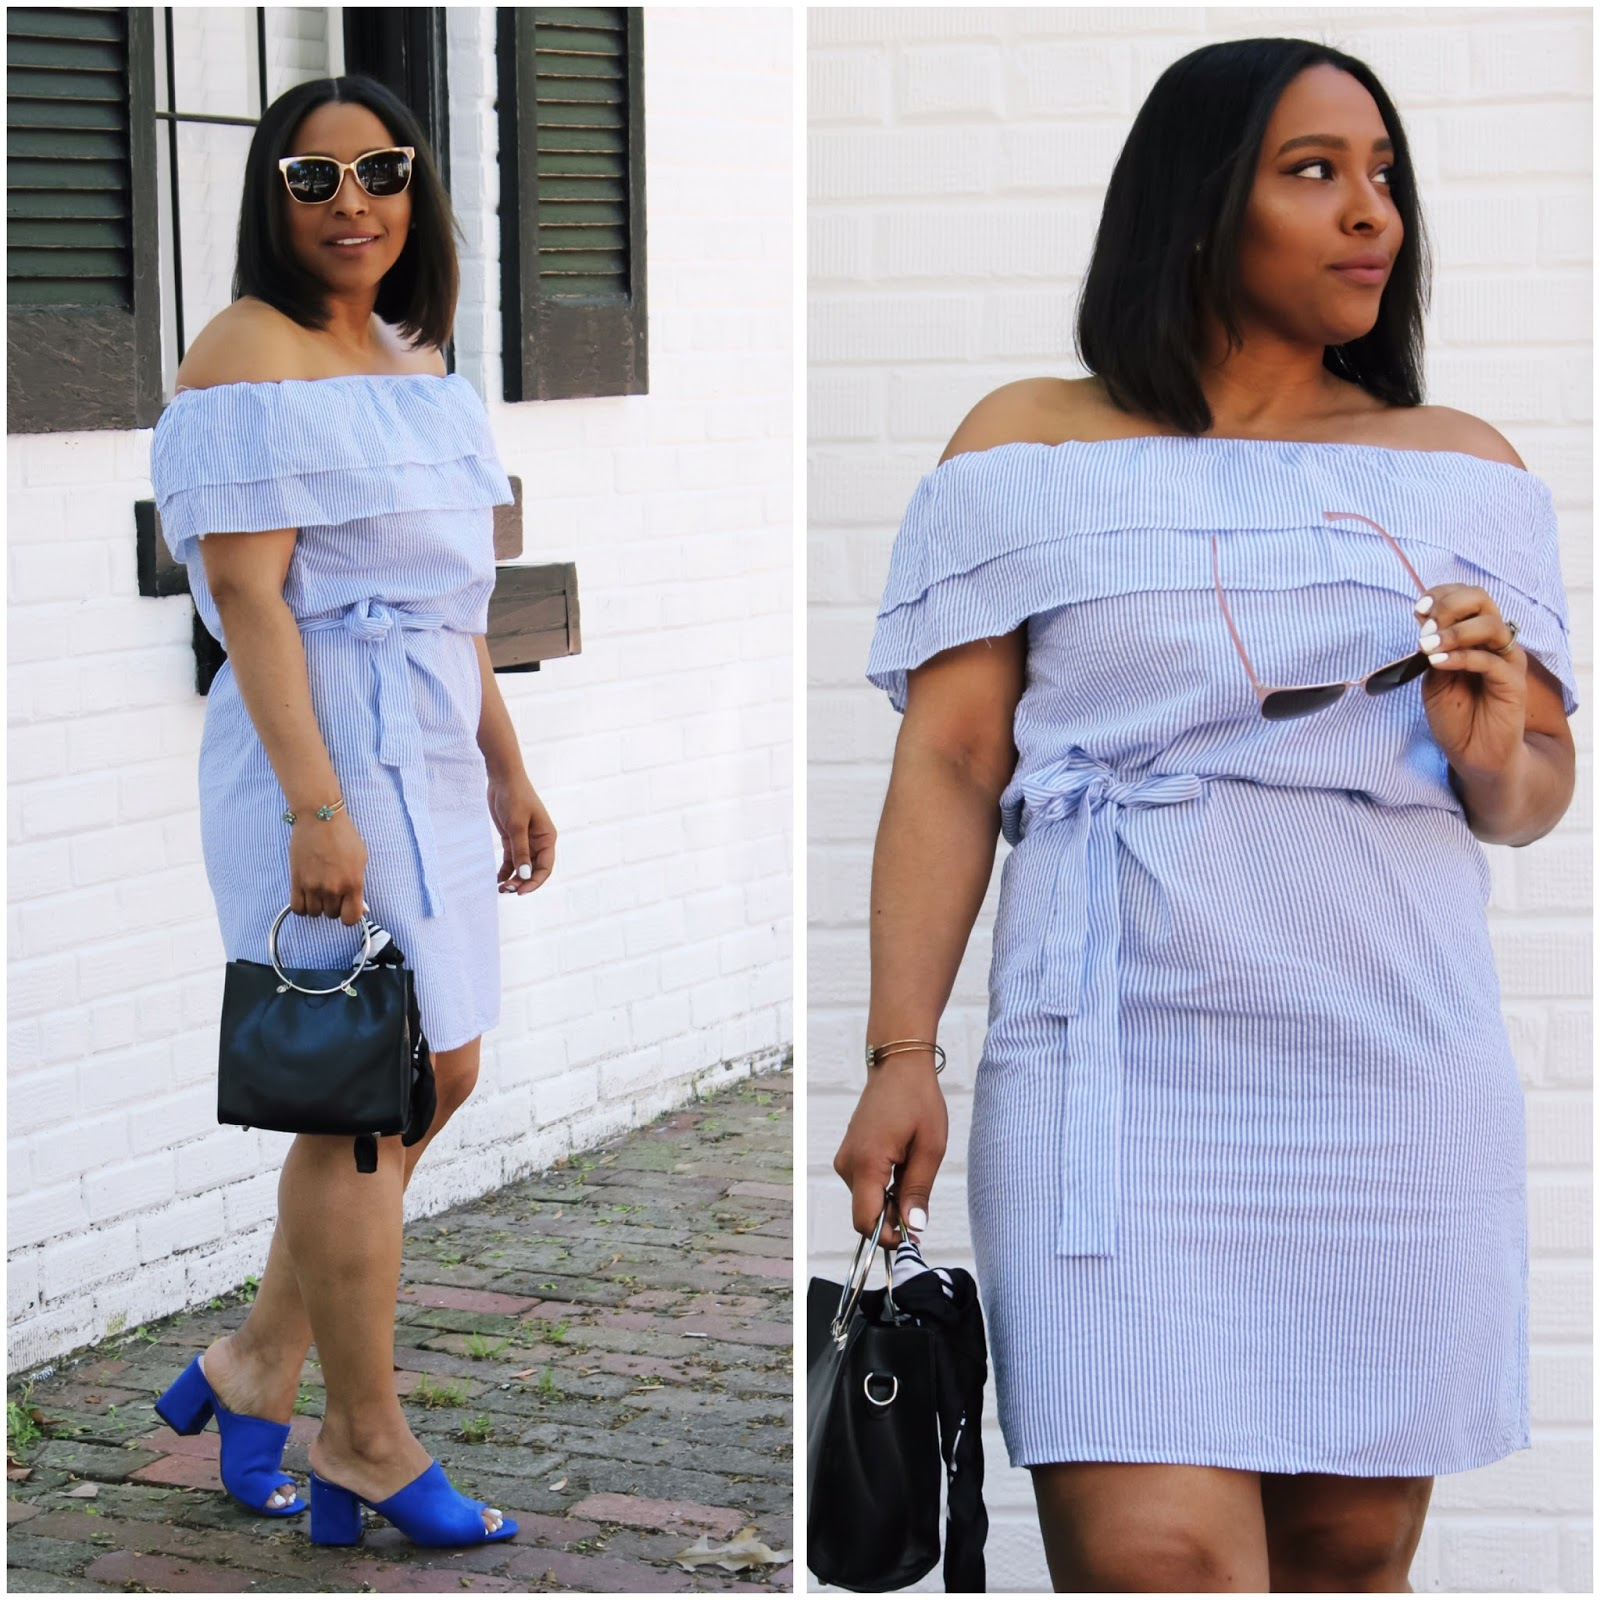 to save.com, spring dress, blue spring dress, off the shoulder dress, off the shoulder trend, blue mules, spring outfits, blue dress